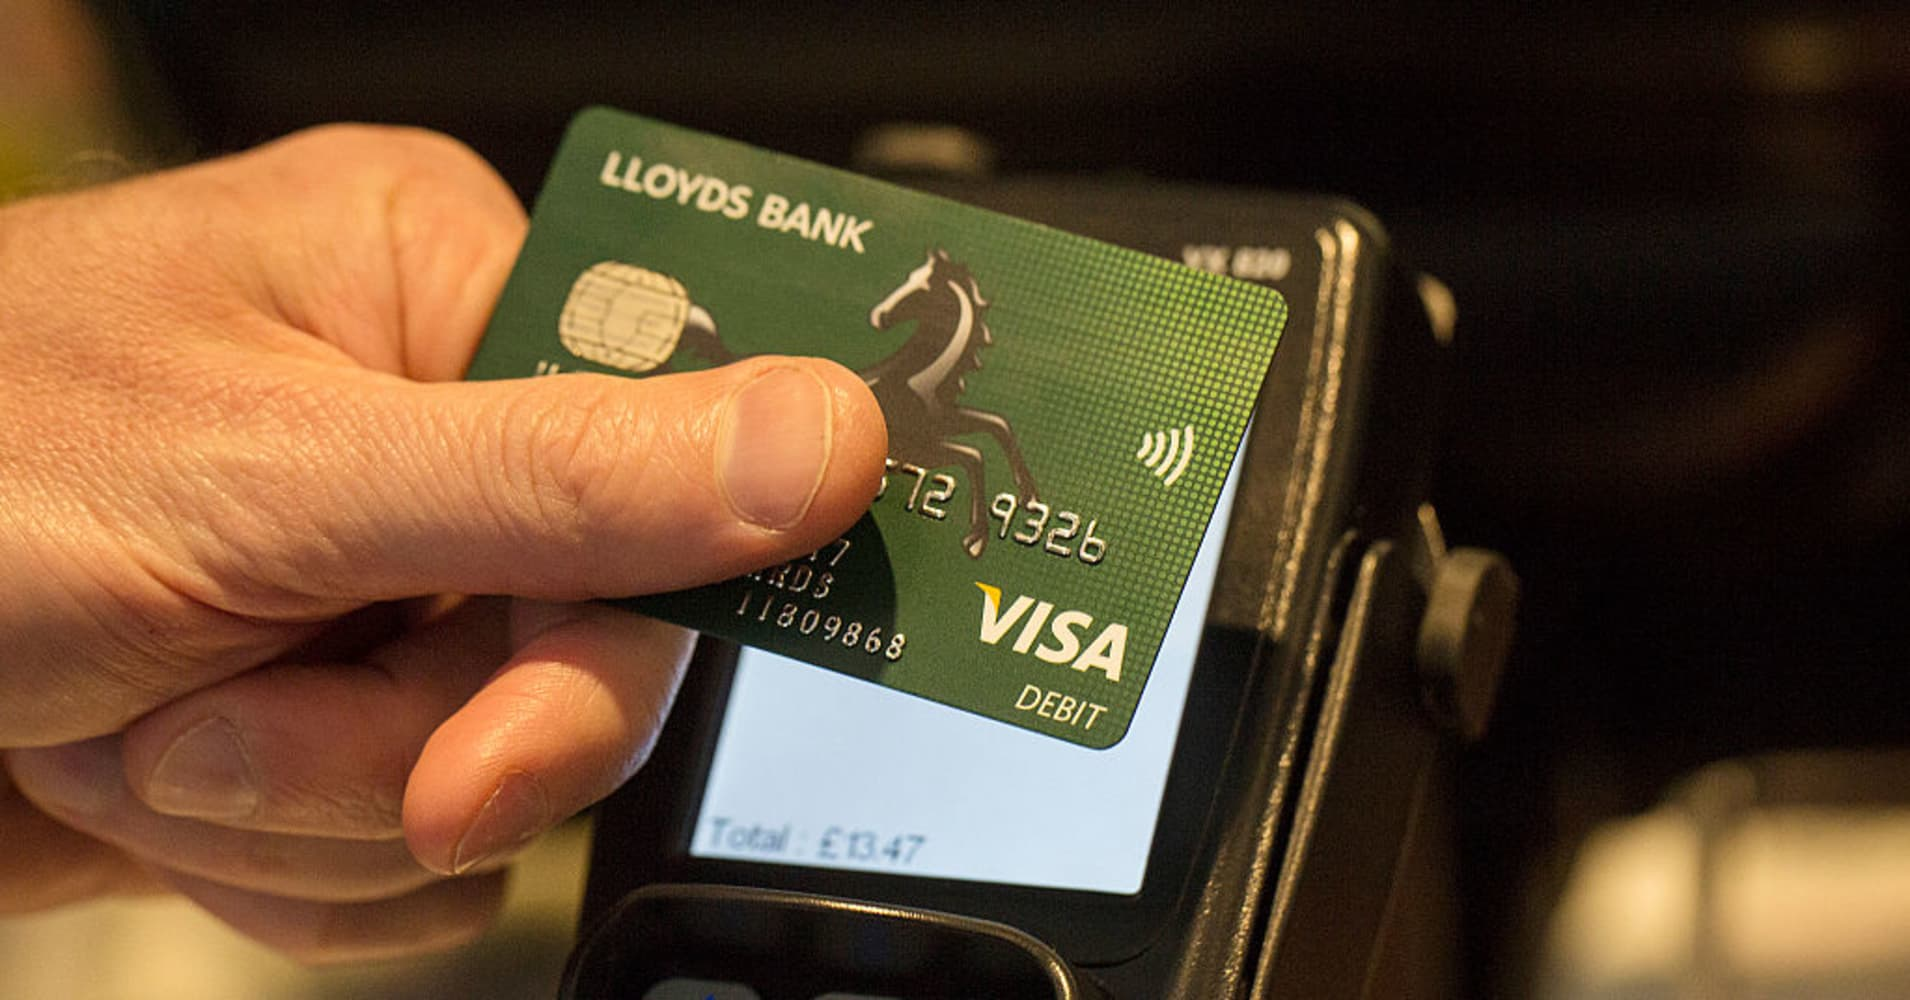 Lloyds banking group in uk bans crypto purchases with credit cards uk bank lloyds follows us lenders in banning people from buying cryptocurrencies reheart Choice Image